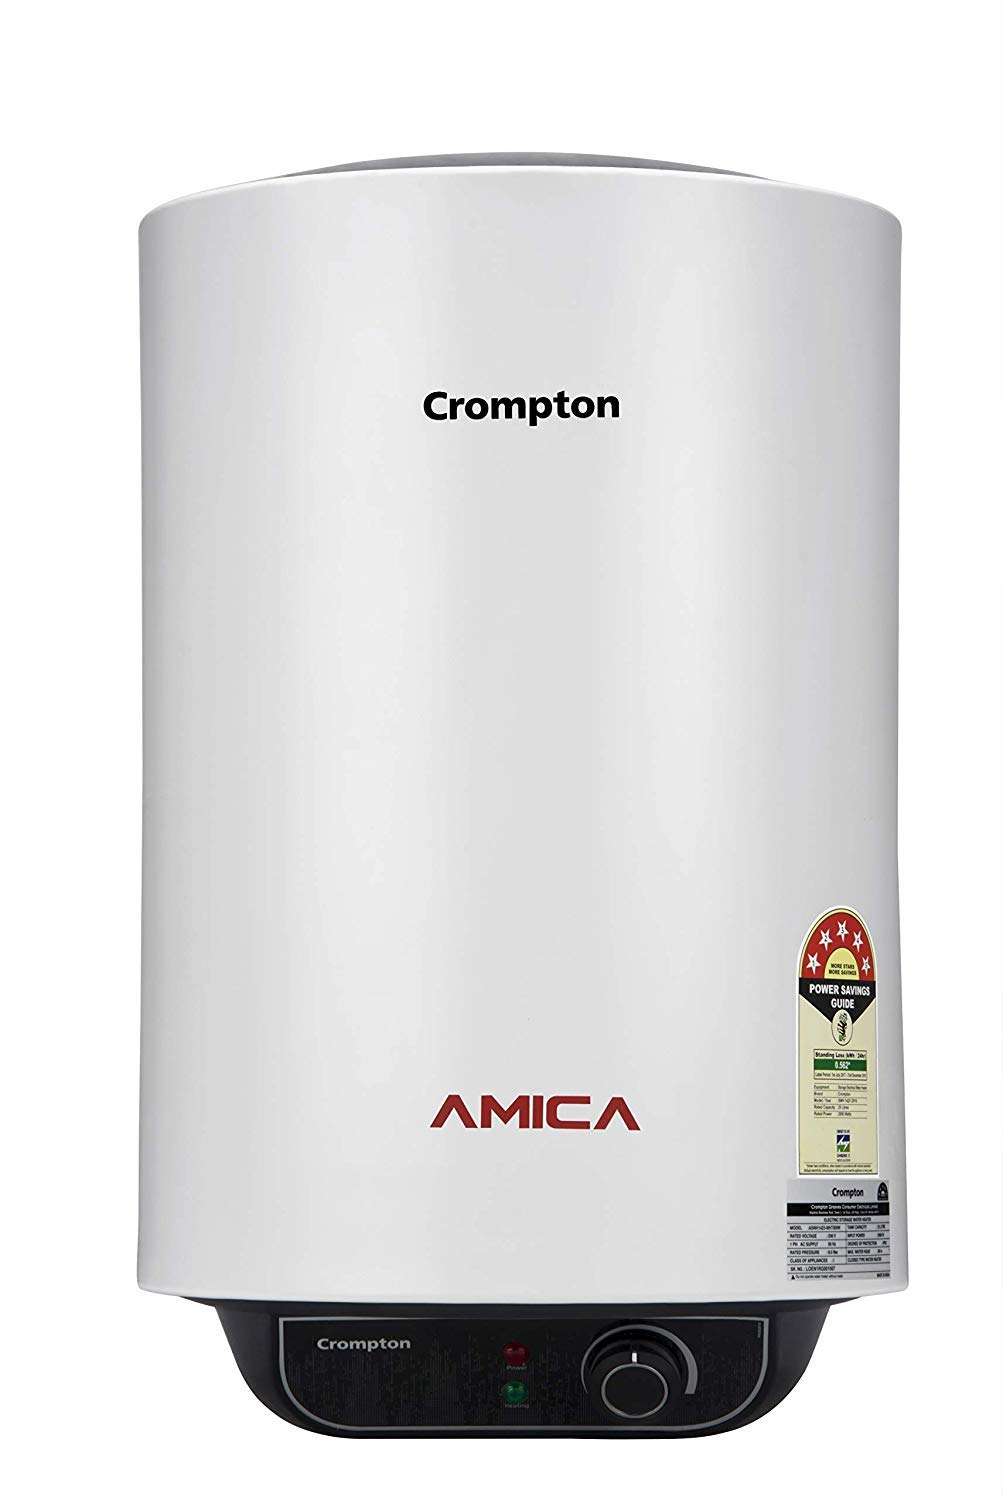 Crompton 25 L Storage Water Geyser (White/Grey, Amica) - Buy